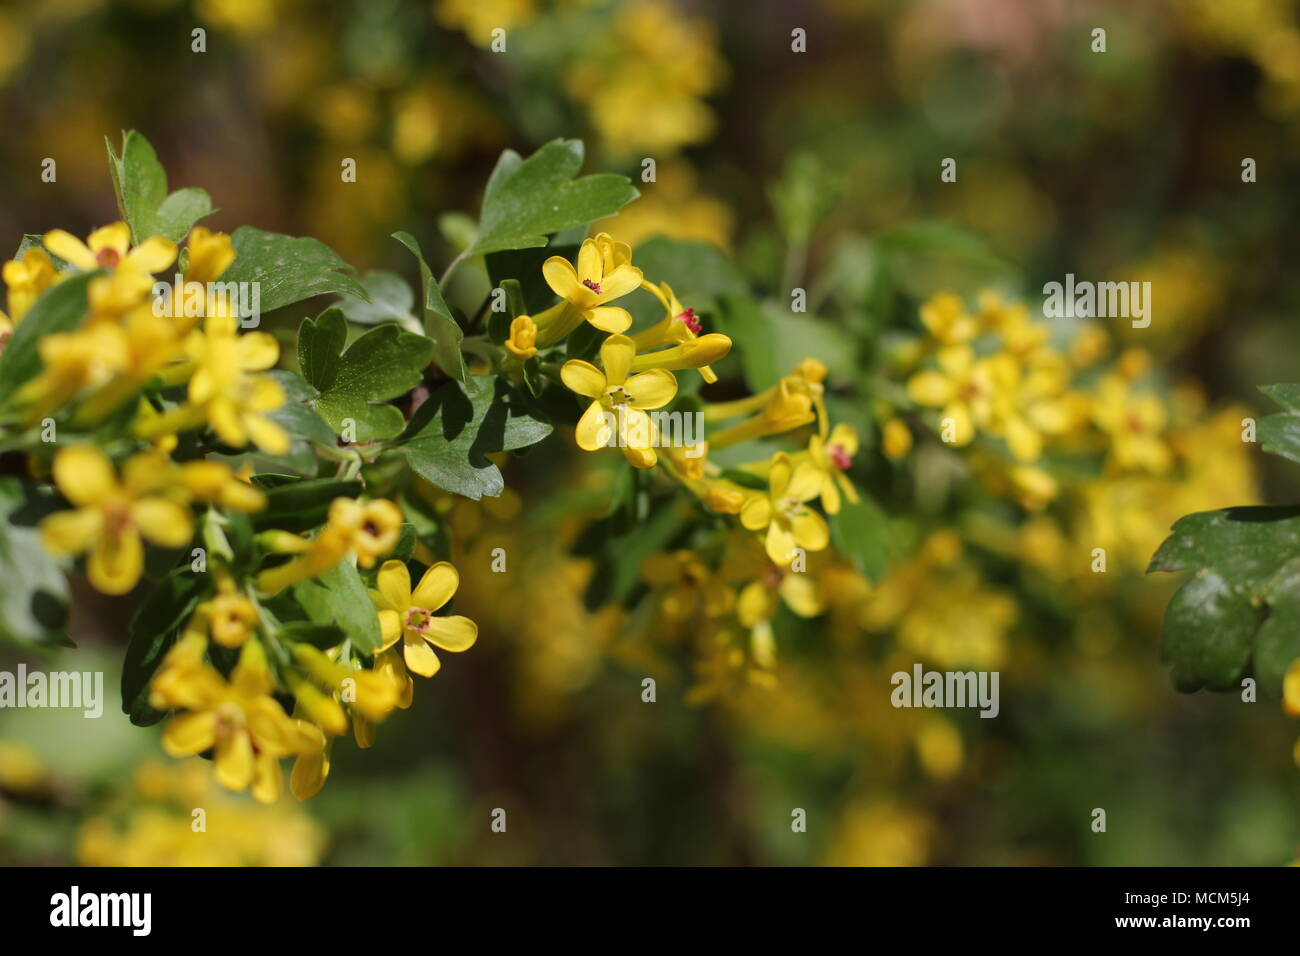 Yellow flowers of golden currant ribes aureum stock photo yellow flowers of golden currant ribes aureum mightylinksfo